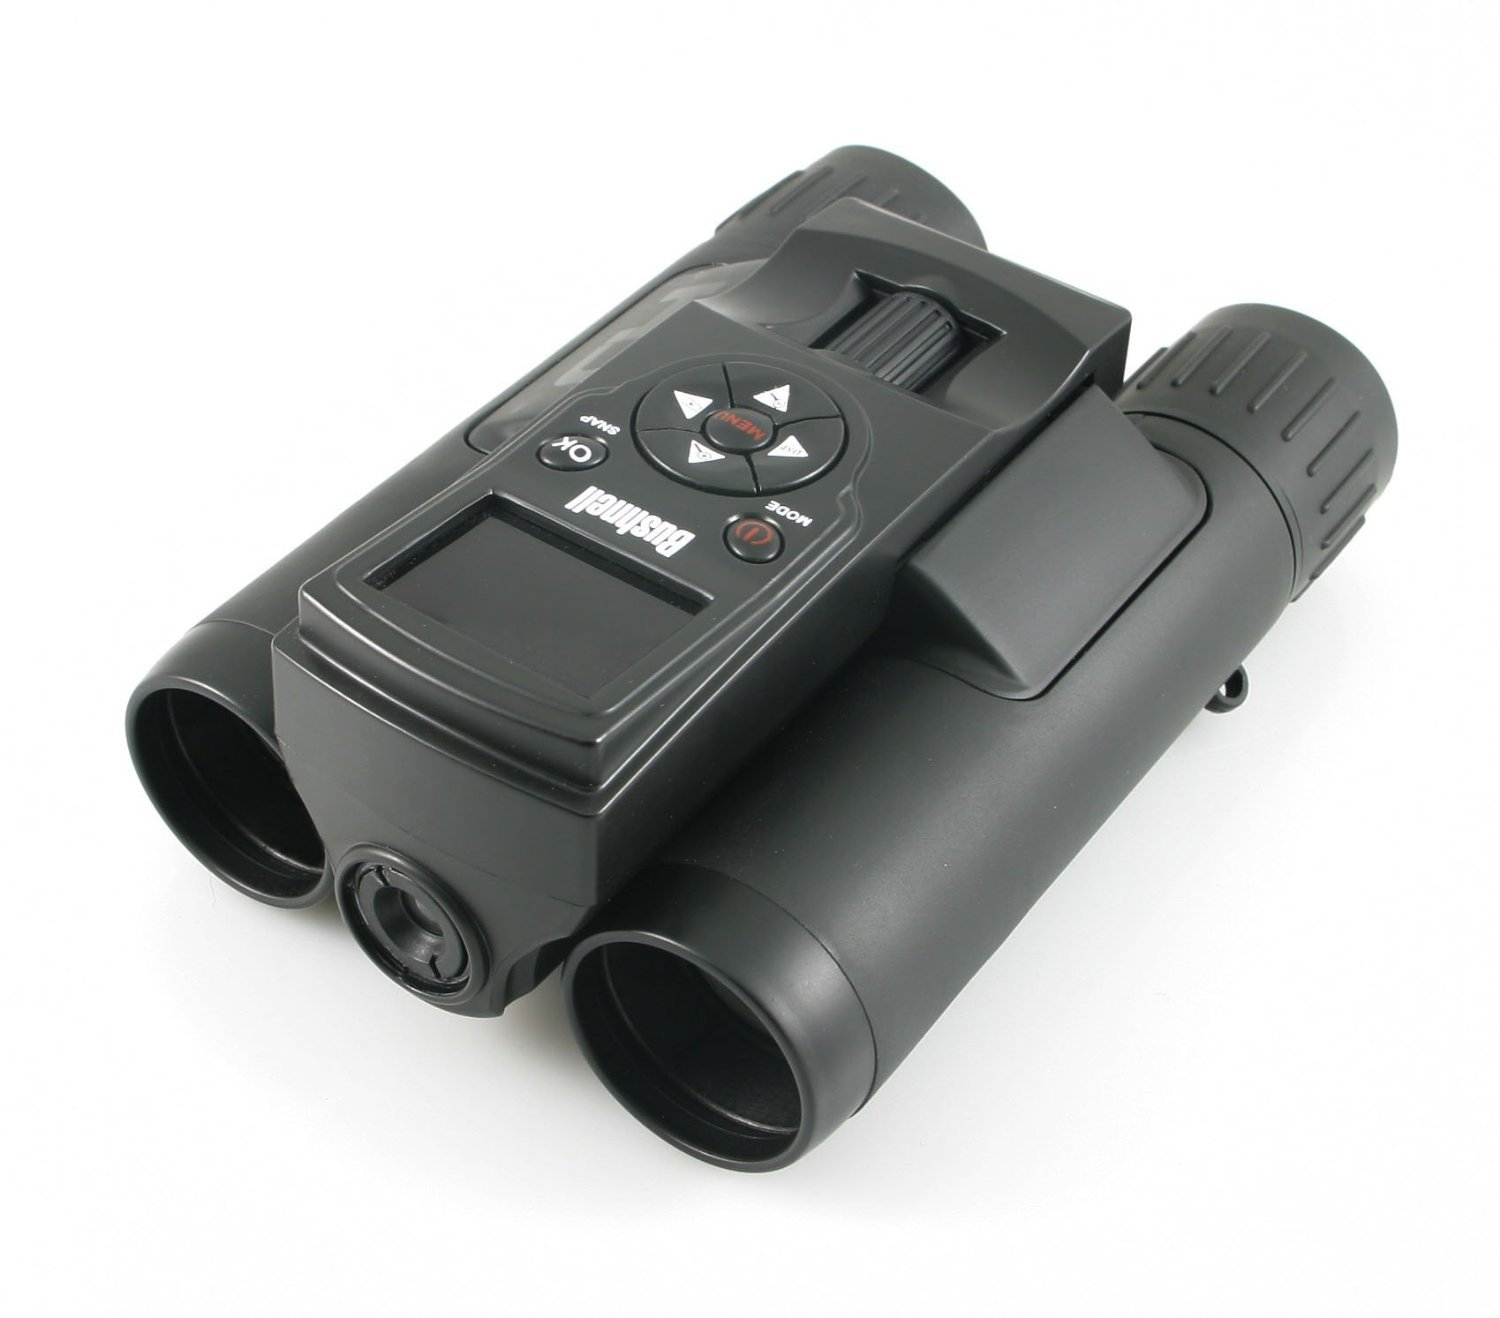 Bushnell 118328 Imageview Binoculars with 16 Gigabyte SD Memory Card and Rechargeable Batteries and Charger